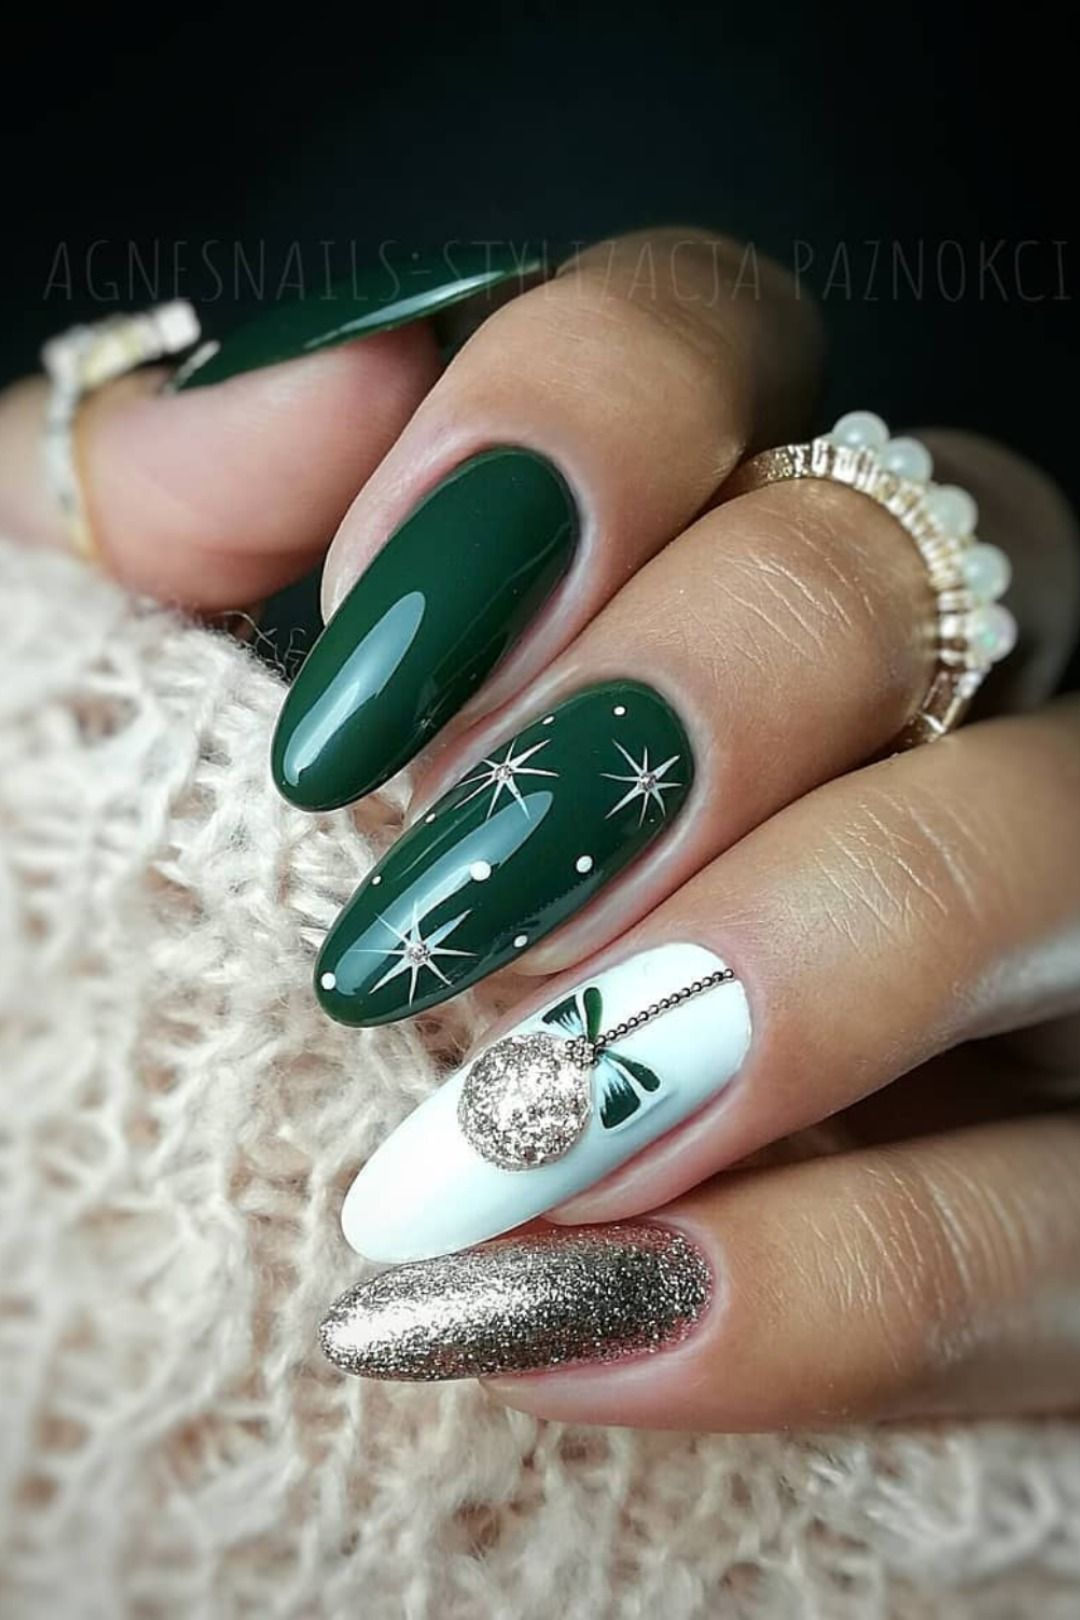 The Cutest And Festive Christmas Nail Designs For Celebration Vanocni Akrylove Nehty Barva Nehtu Gelove Nehty